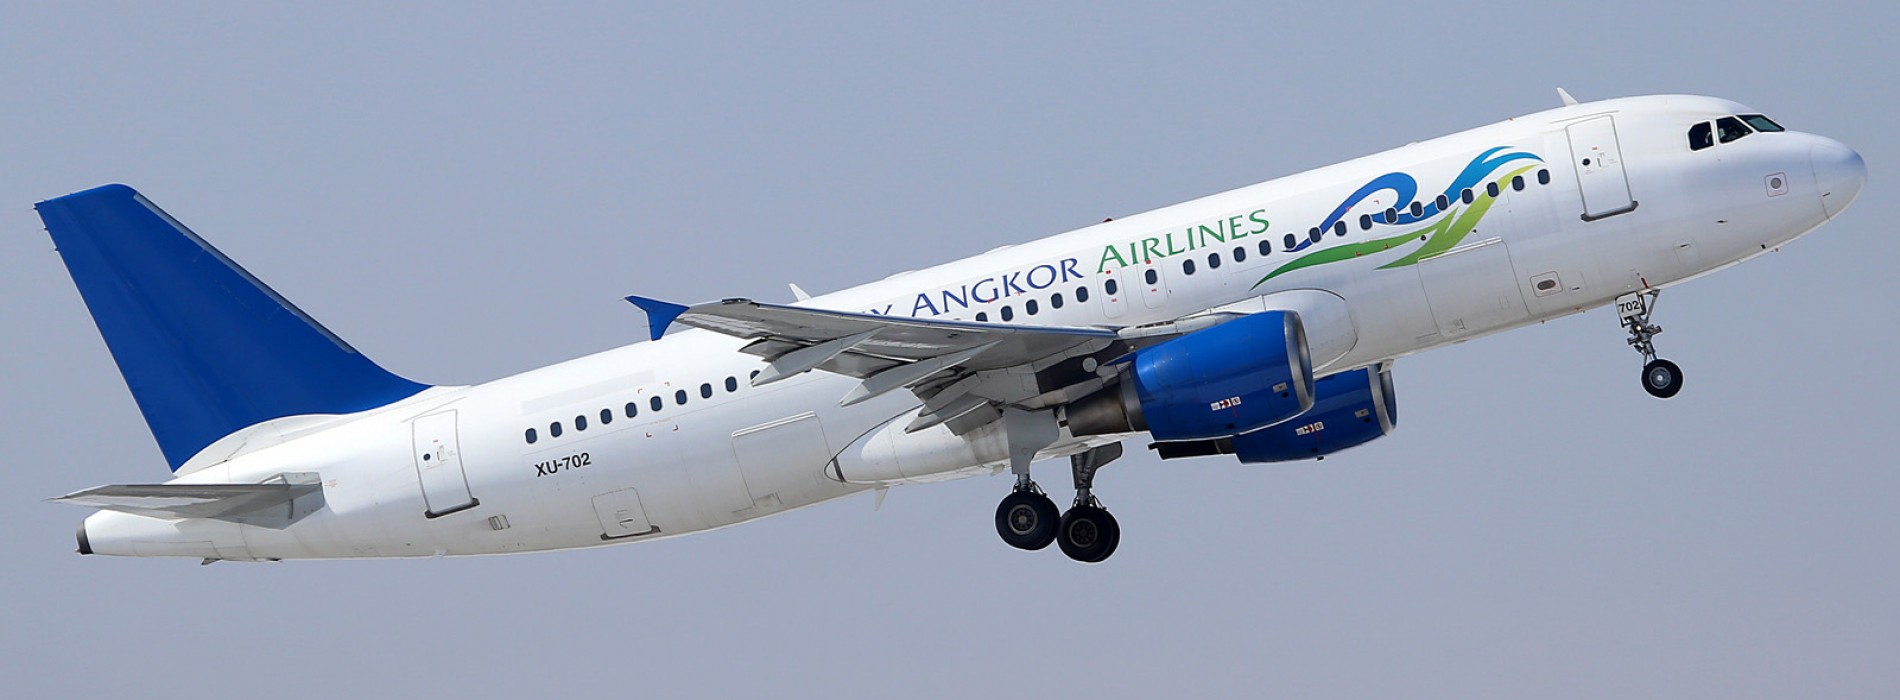 Sky Angkor Airlines selects Sabre to support its growth objectives